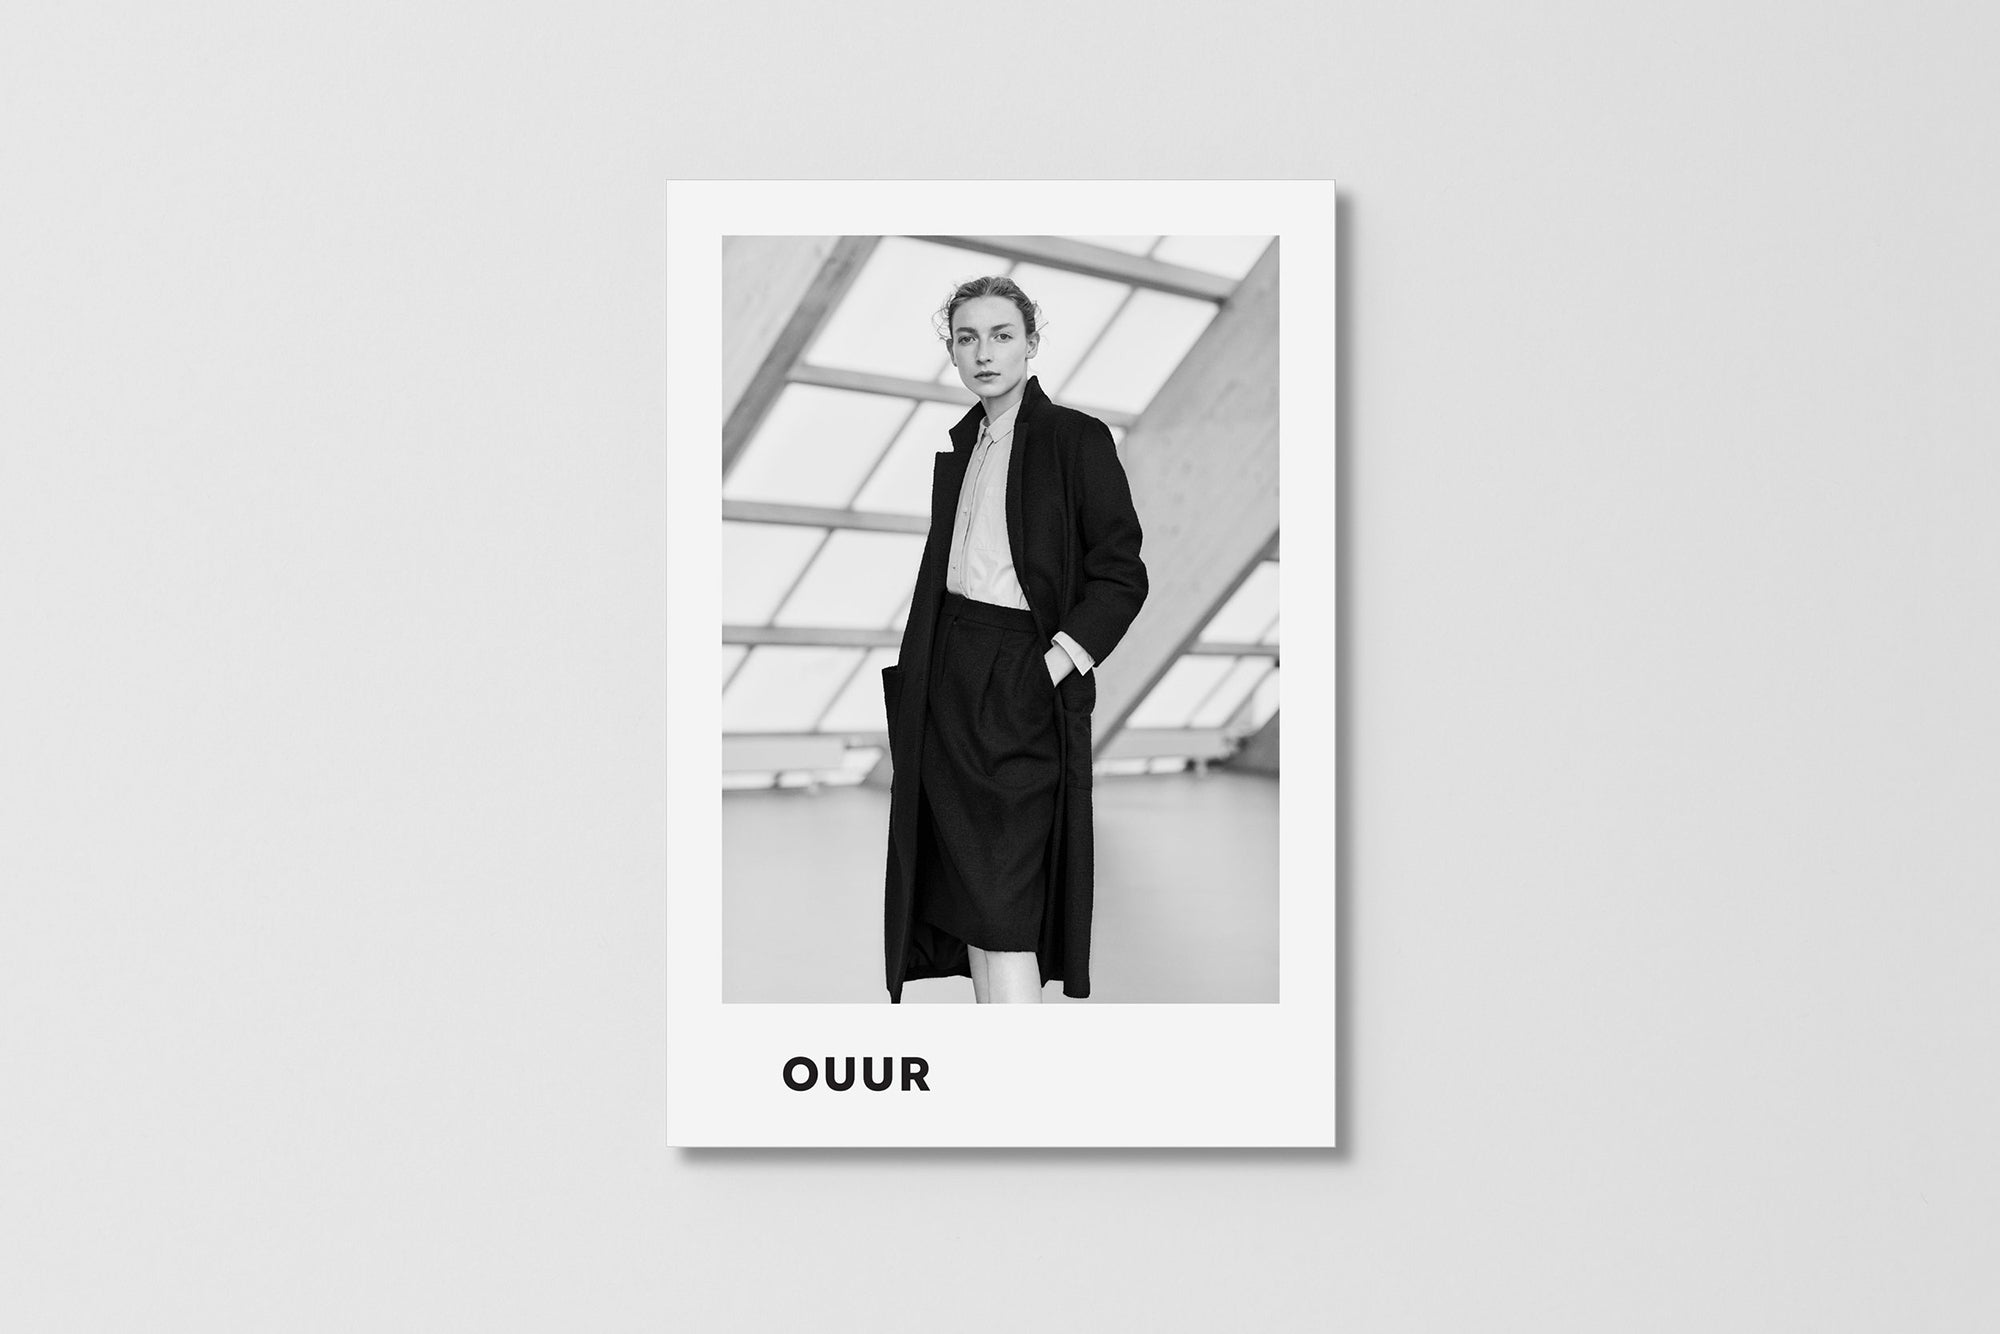 Studio8585: Ouur Collection